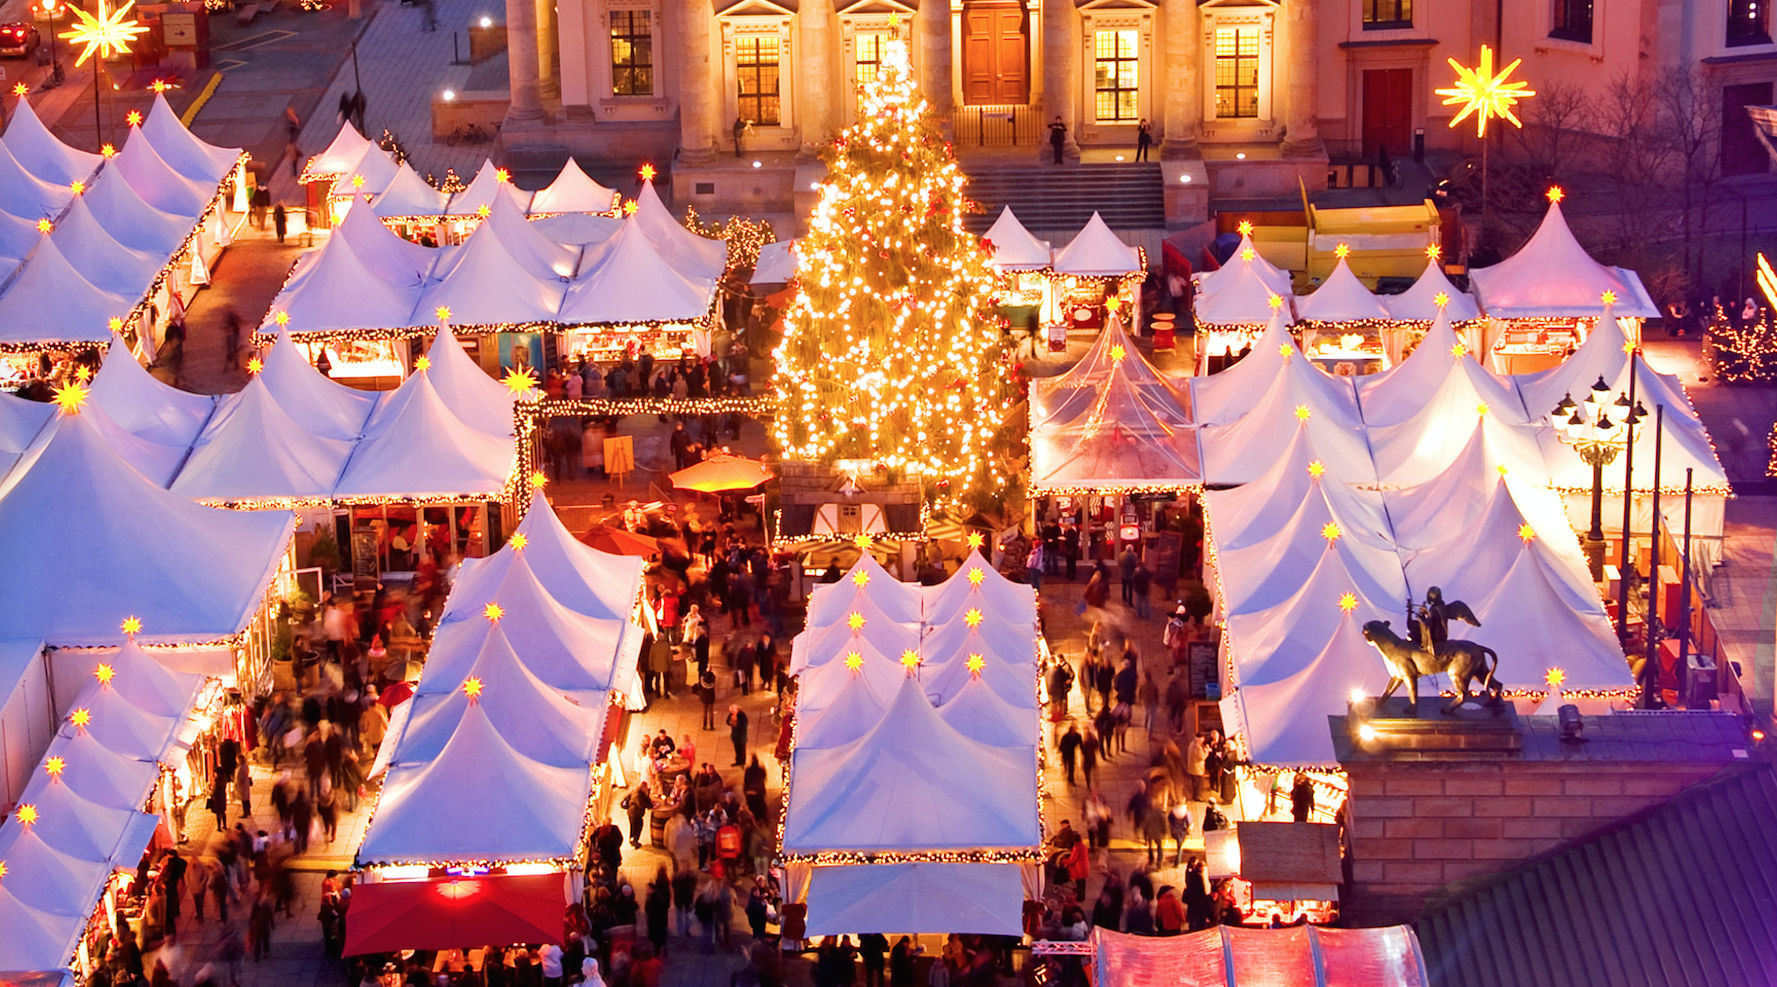 Christmas Market New York City.Here Are The Opening Dates For Every Holiday Market In New York